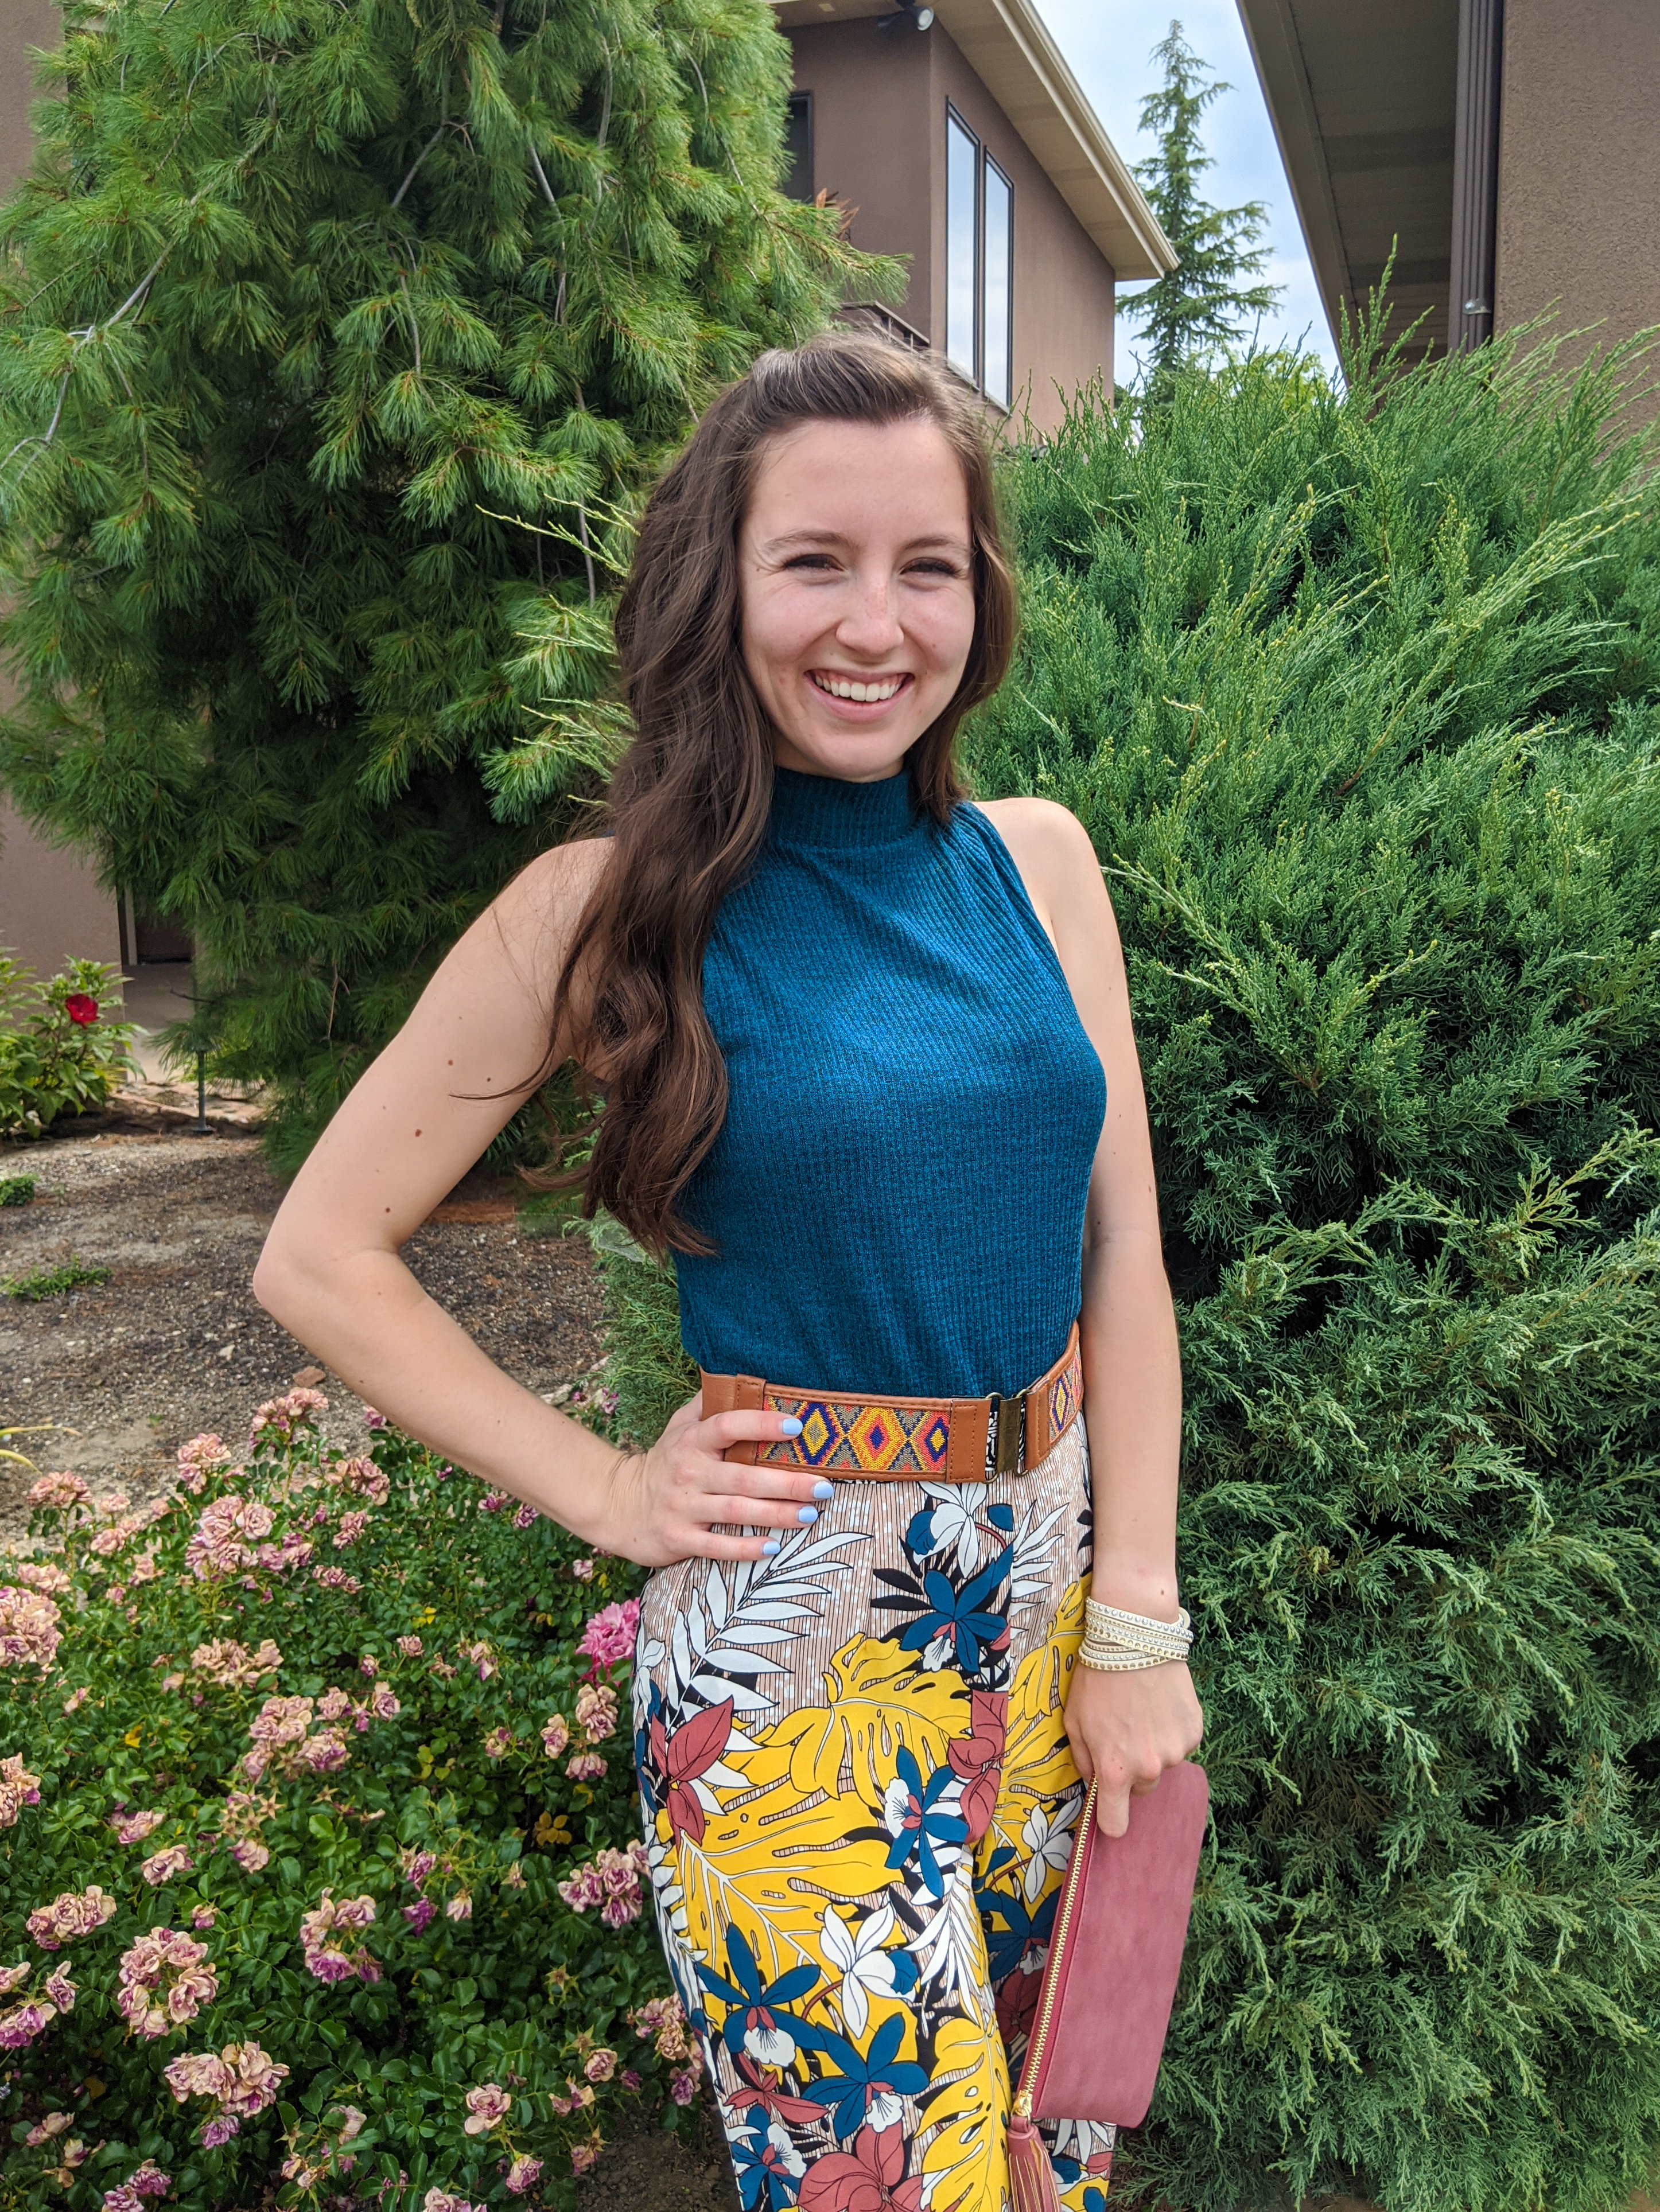 colorful-pants-turquoise-top-patterned-pants